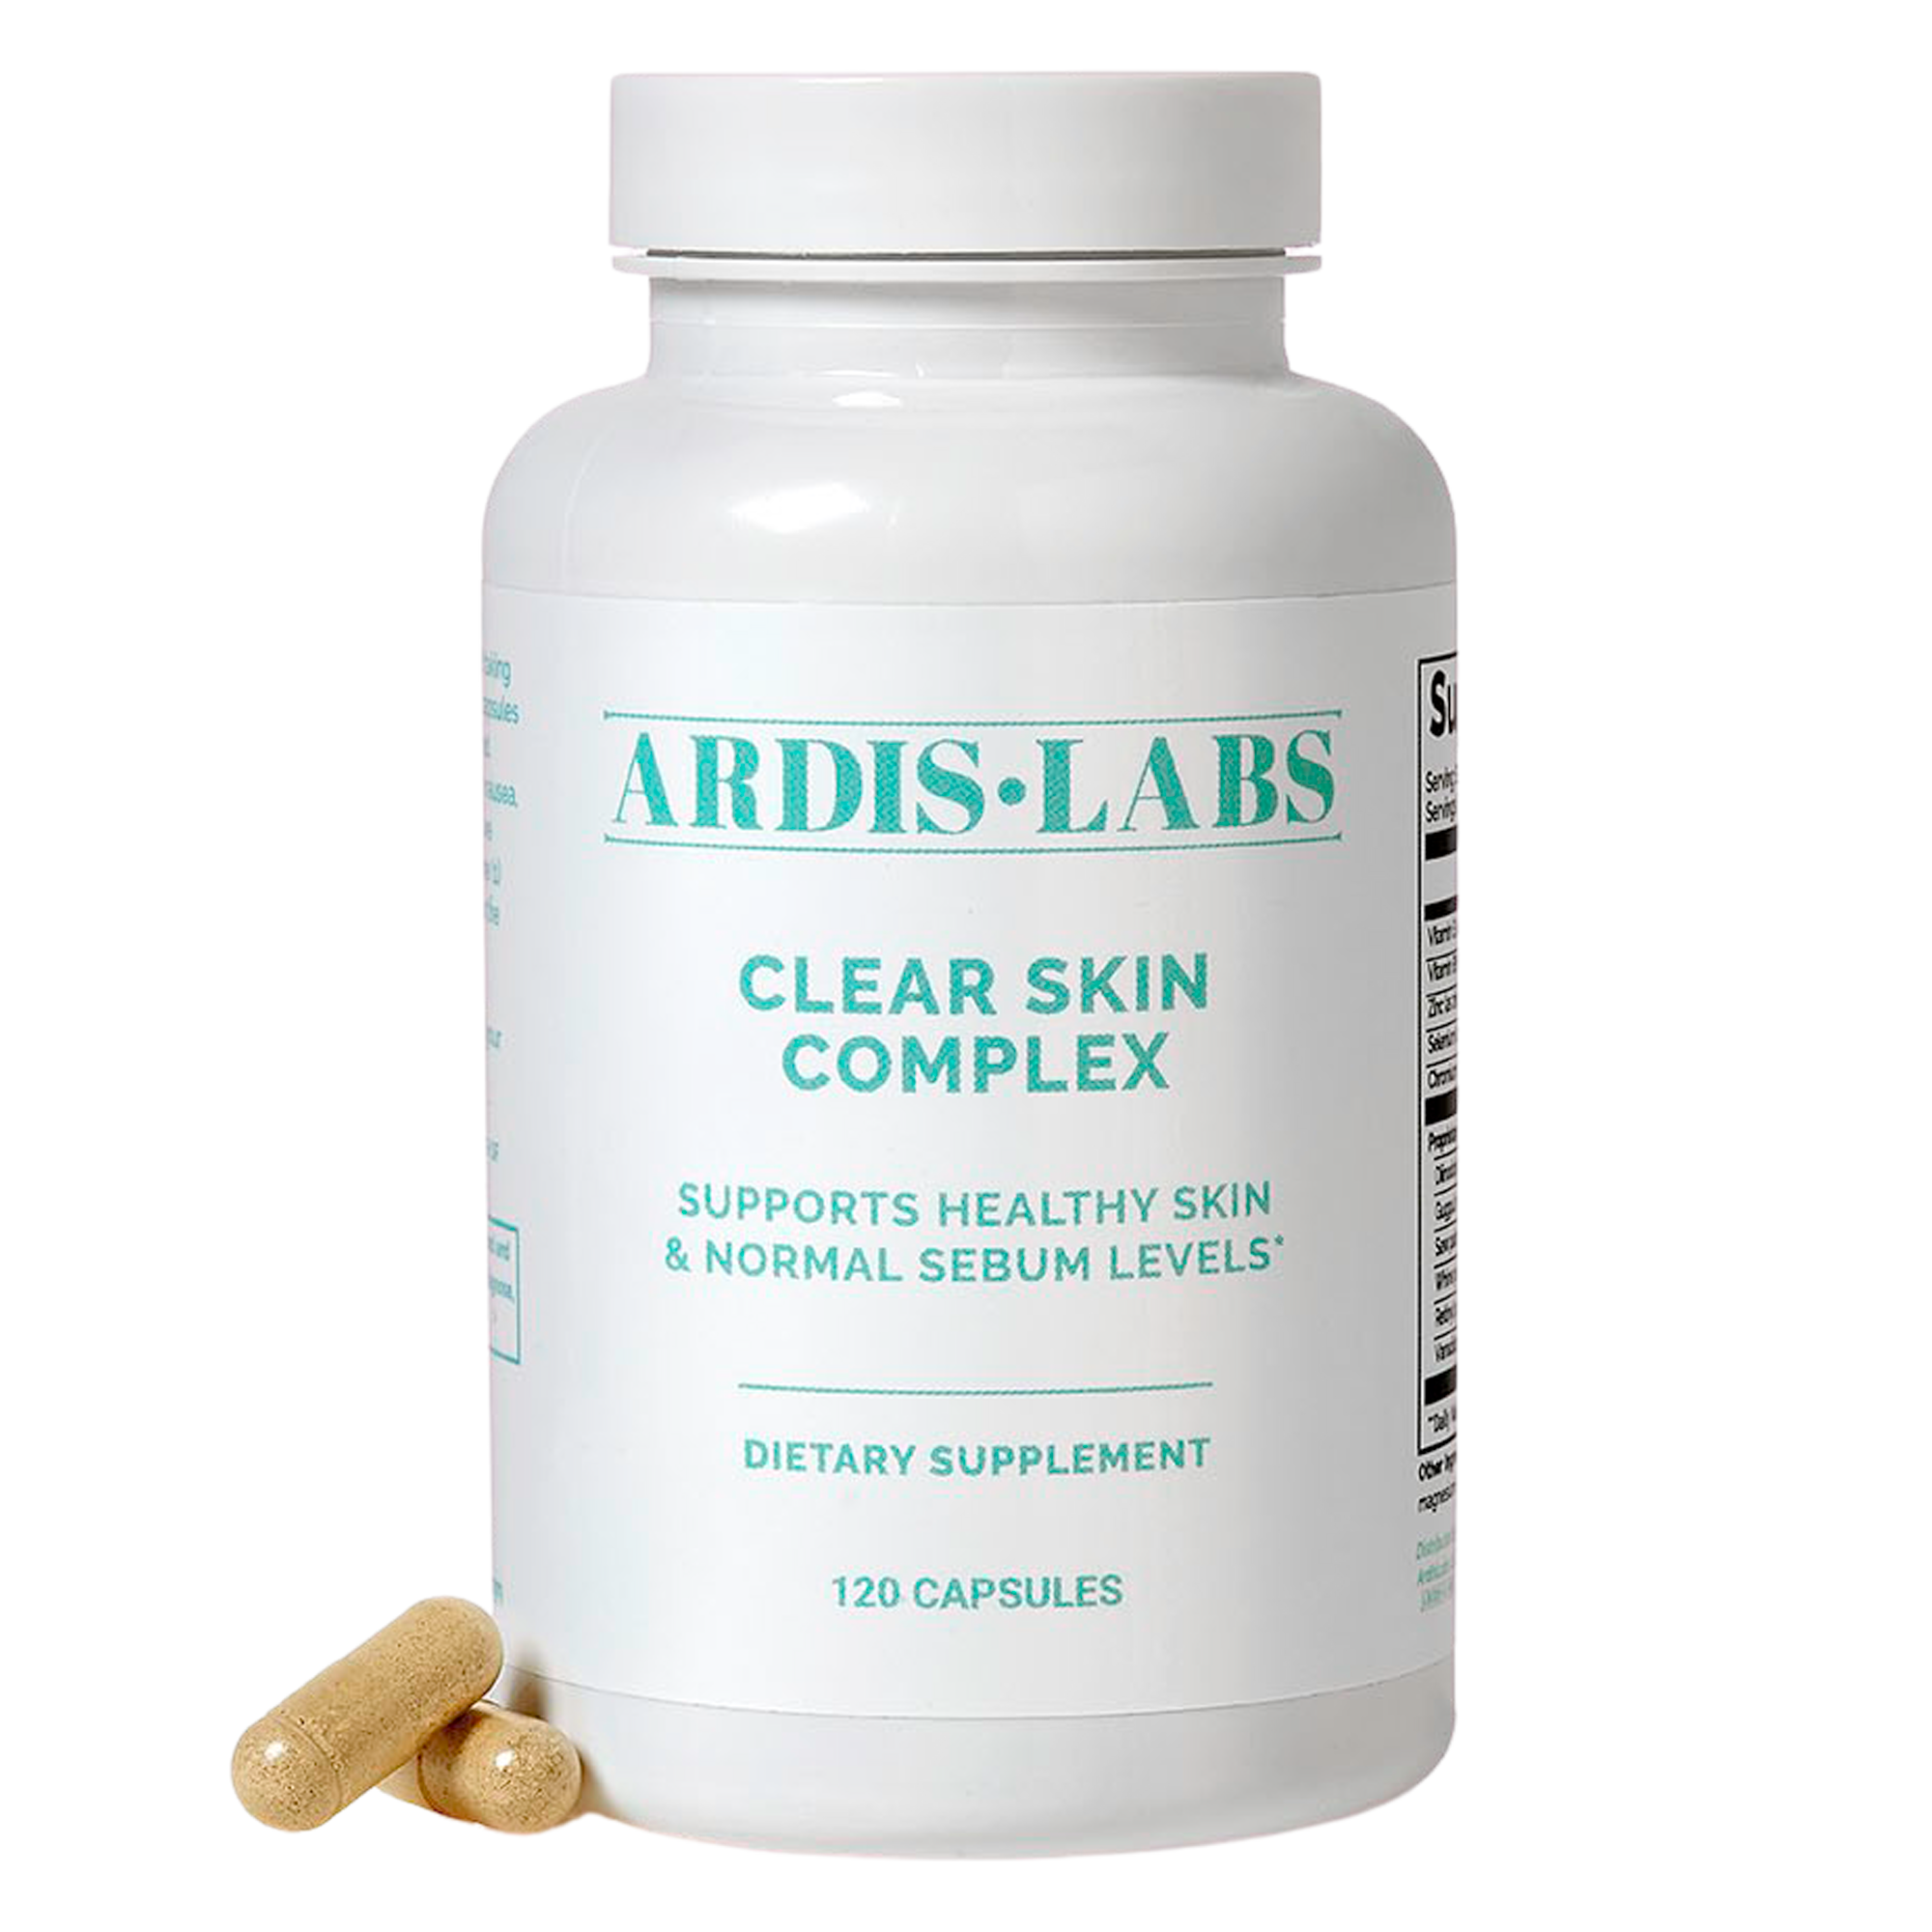 ArdisLabs Clear Skin Complex Product Information